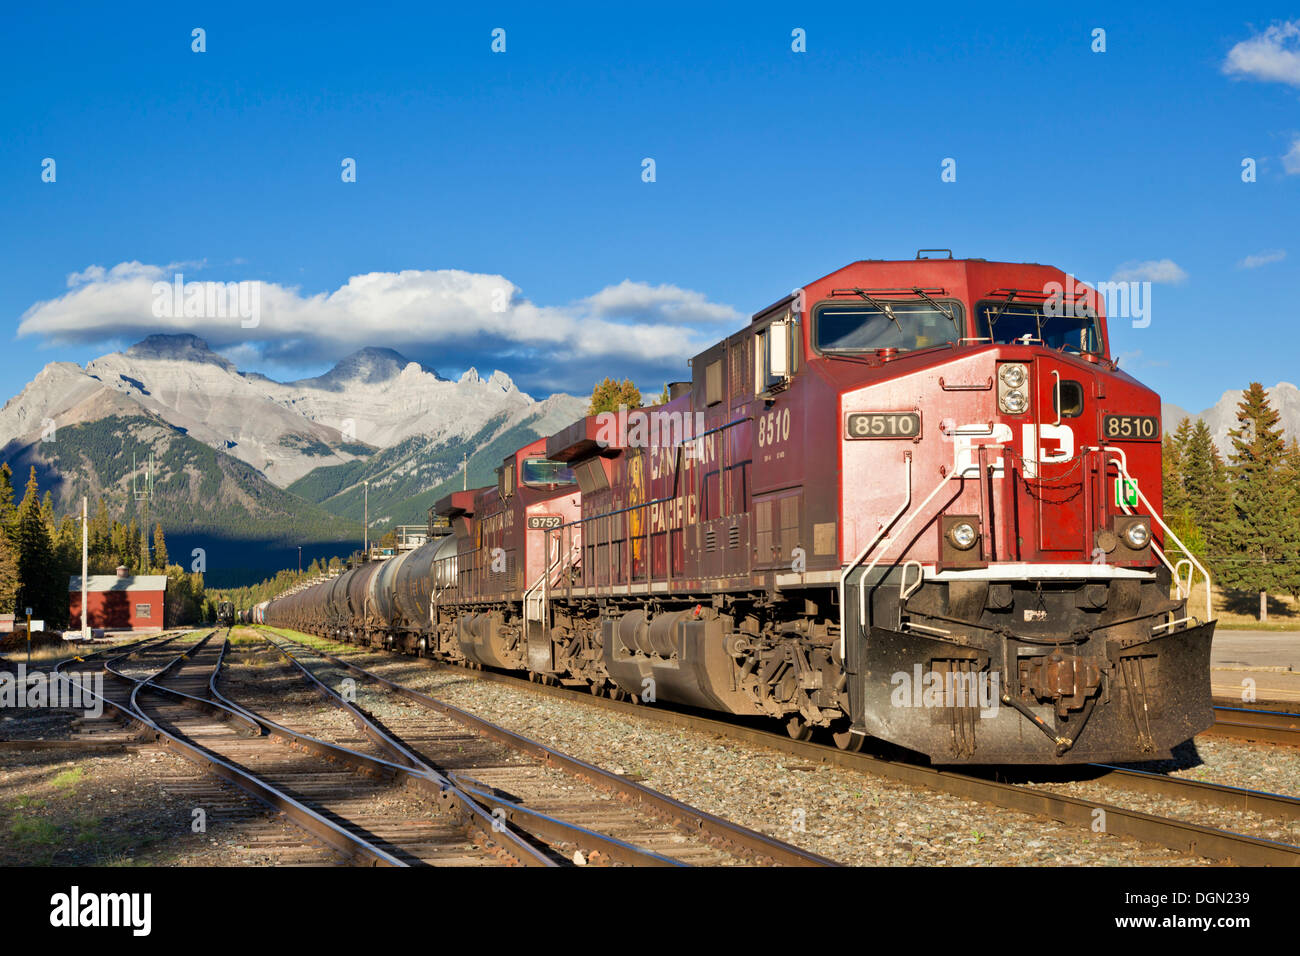 Canadian Pacific freight train waiting for departure at Banff station Banff National Park Rockies Alberta AB Canada - Stock Image